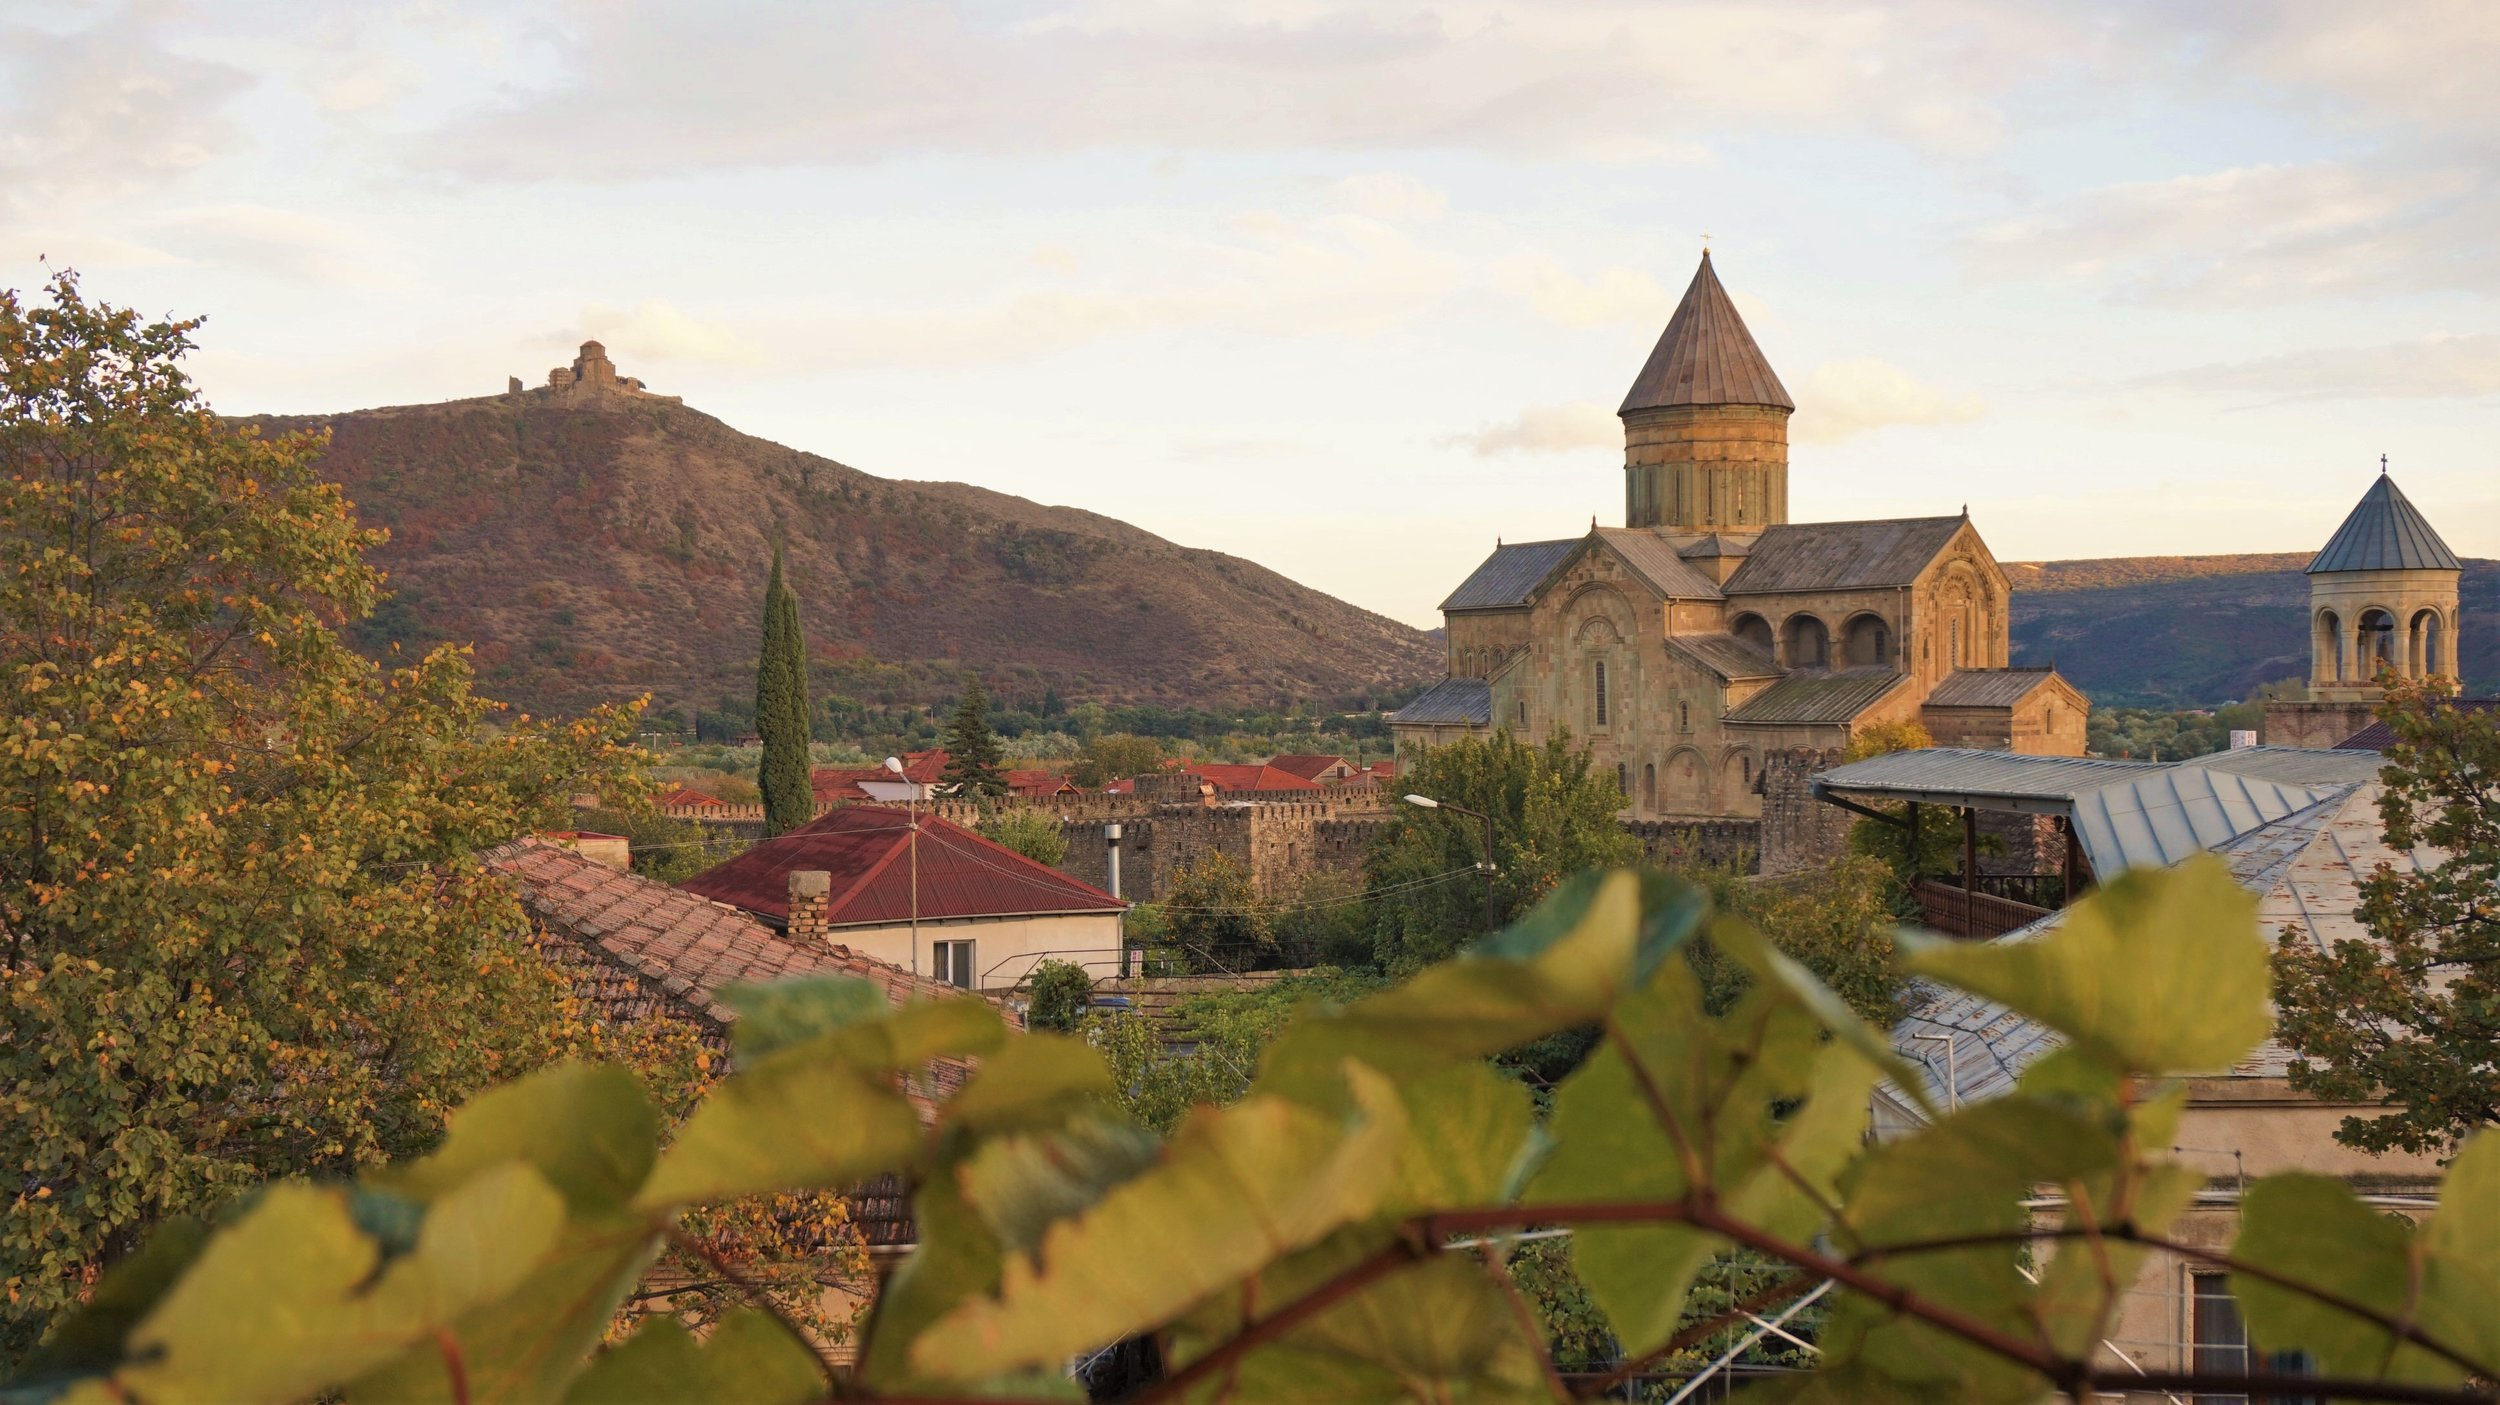 mtshketa makes a perfect day trip from tbilisi